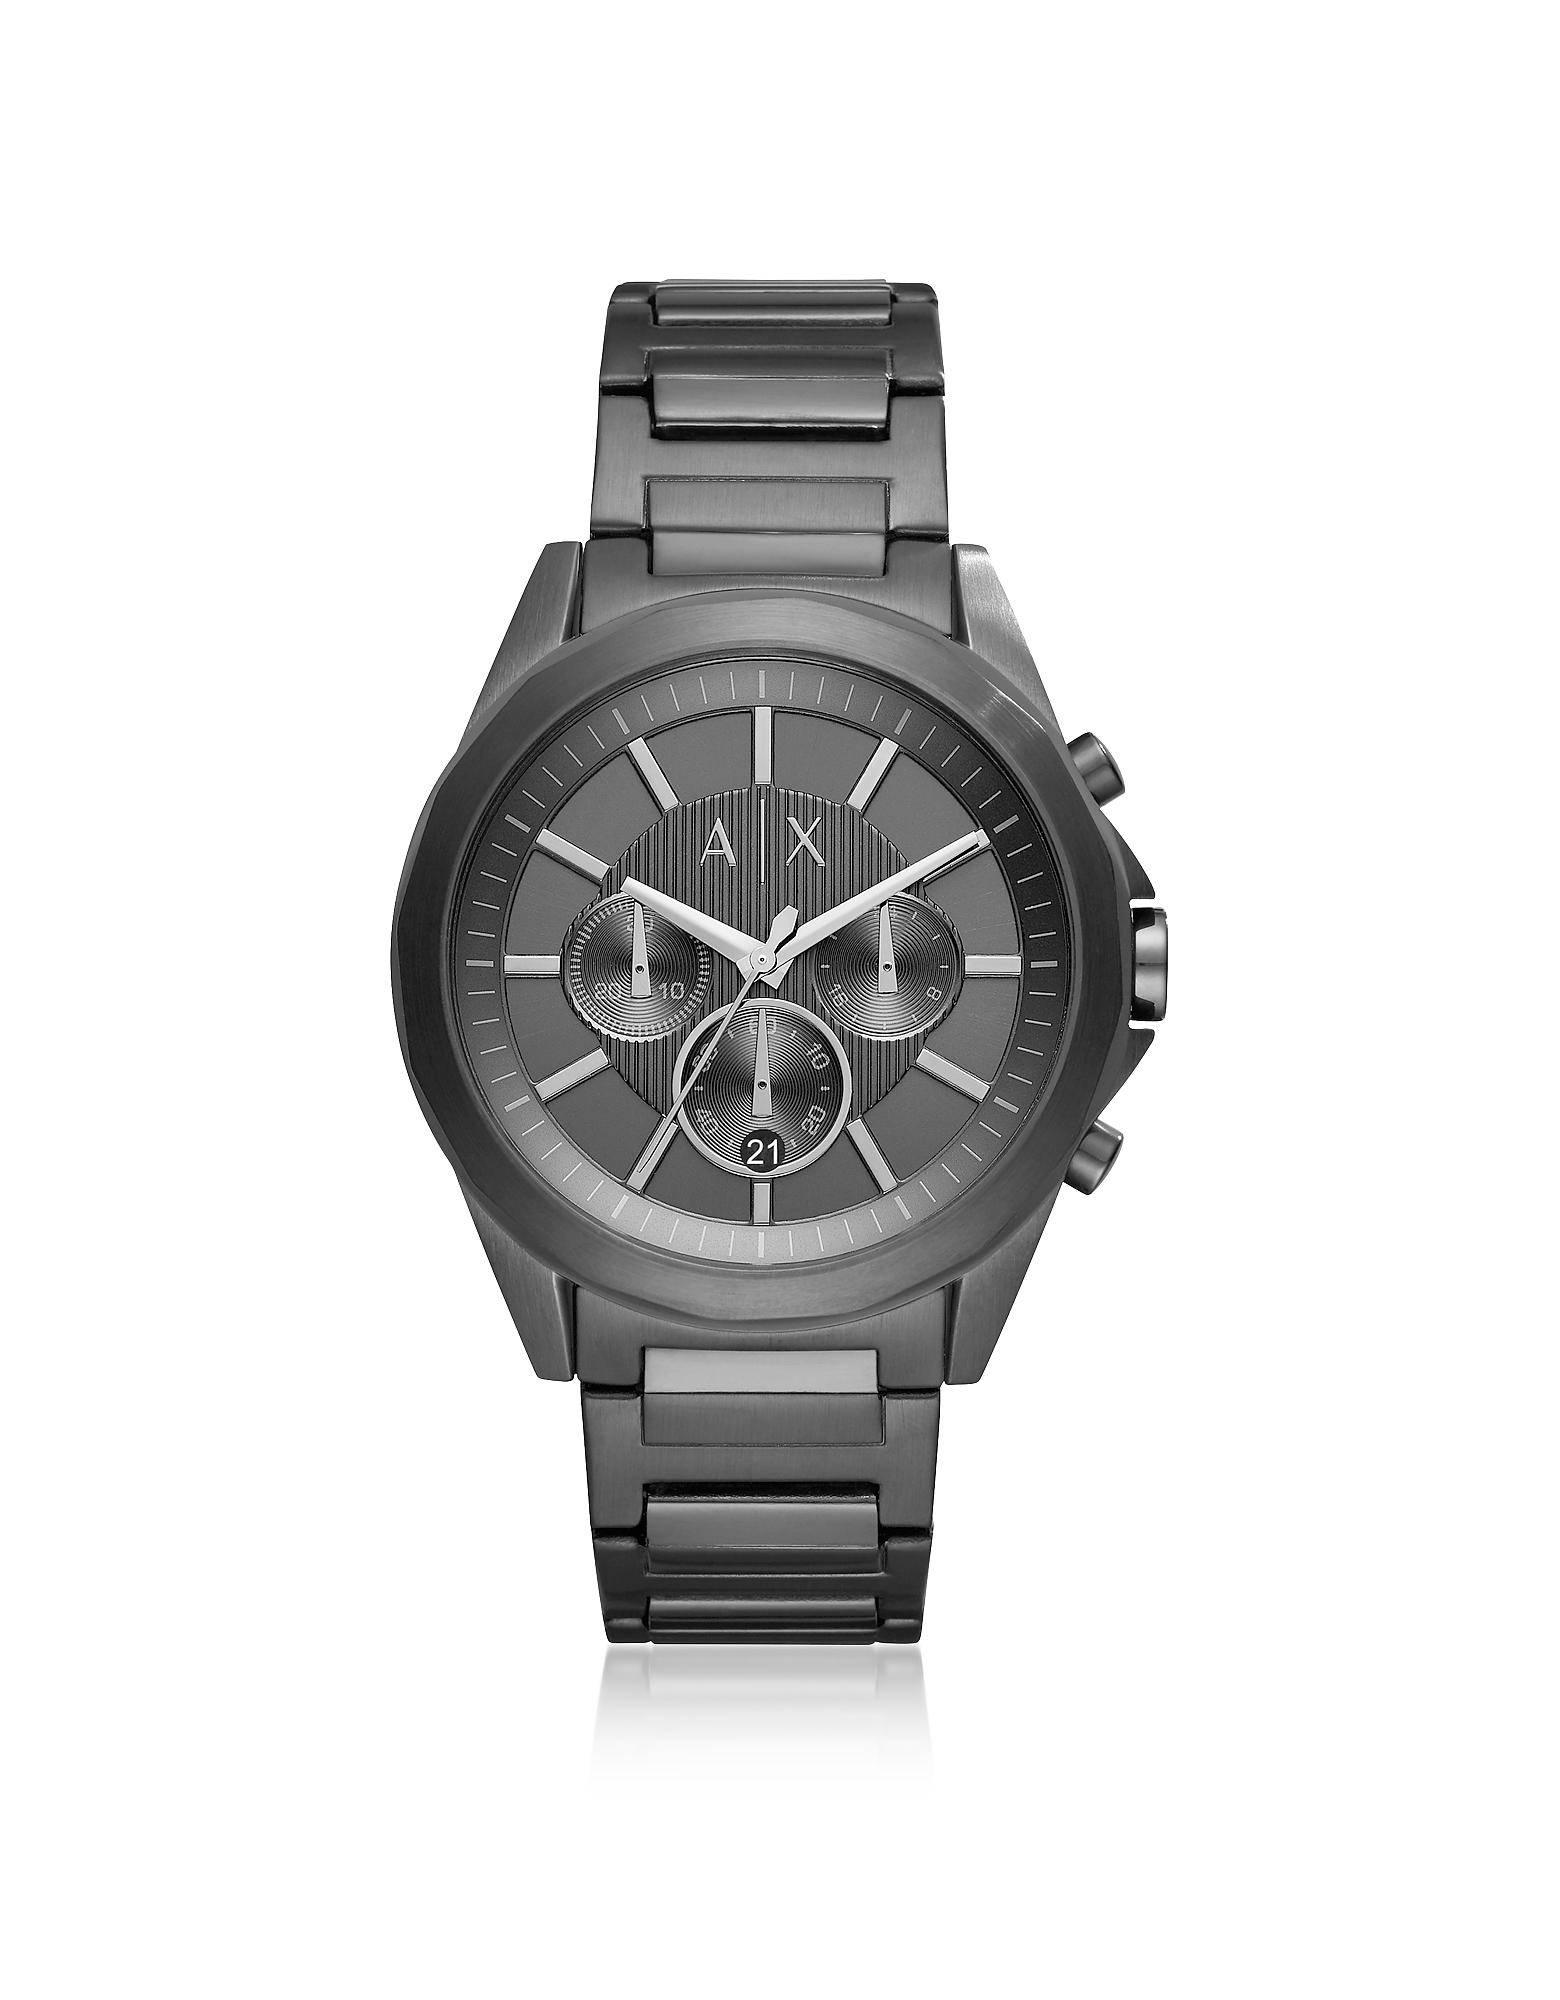 Drexler Black Dial and Black Tone Stainless Steel Men's Chronograph Watch